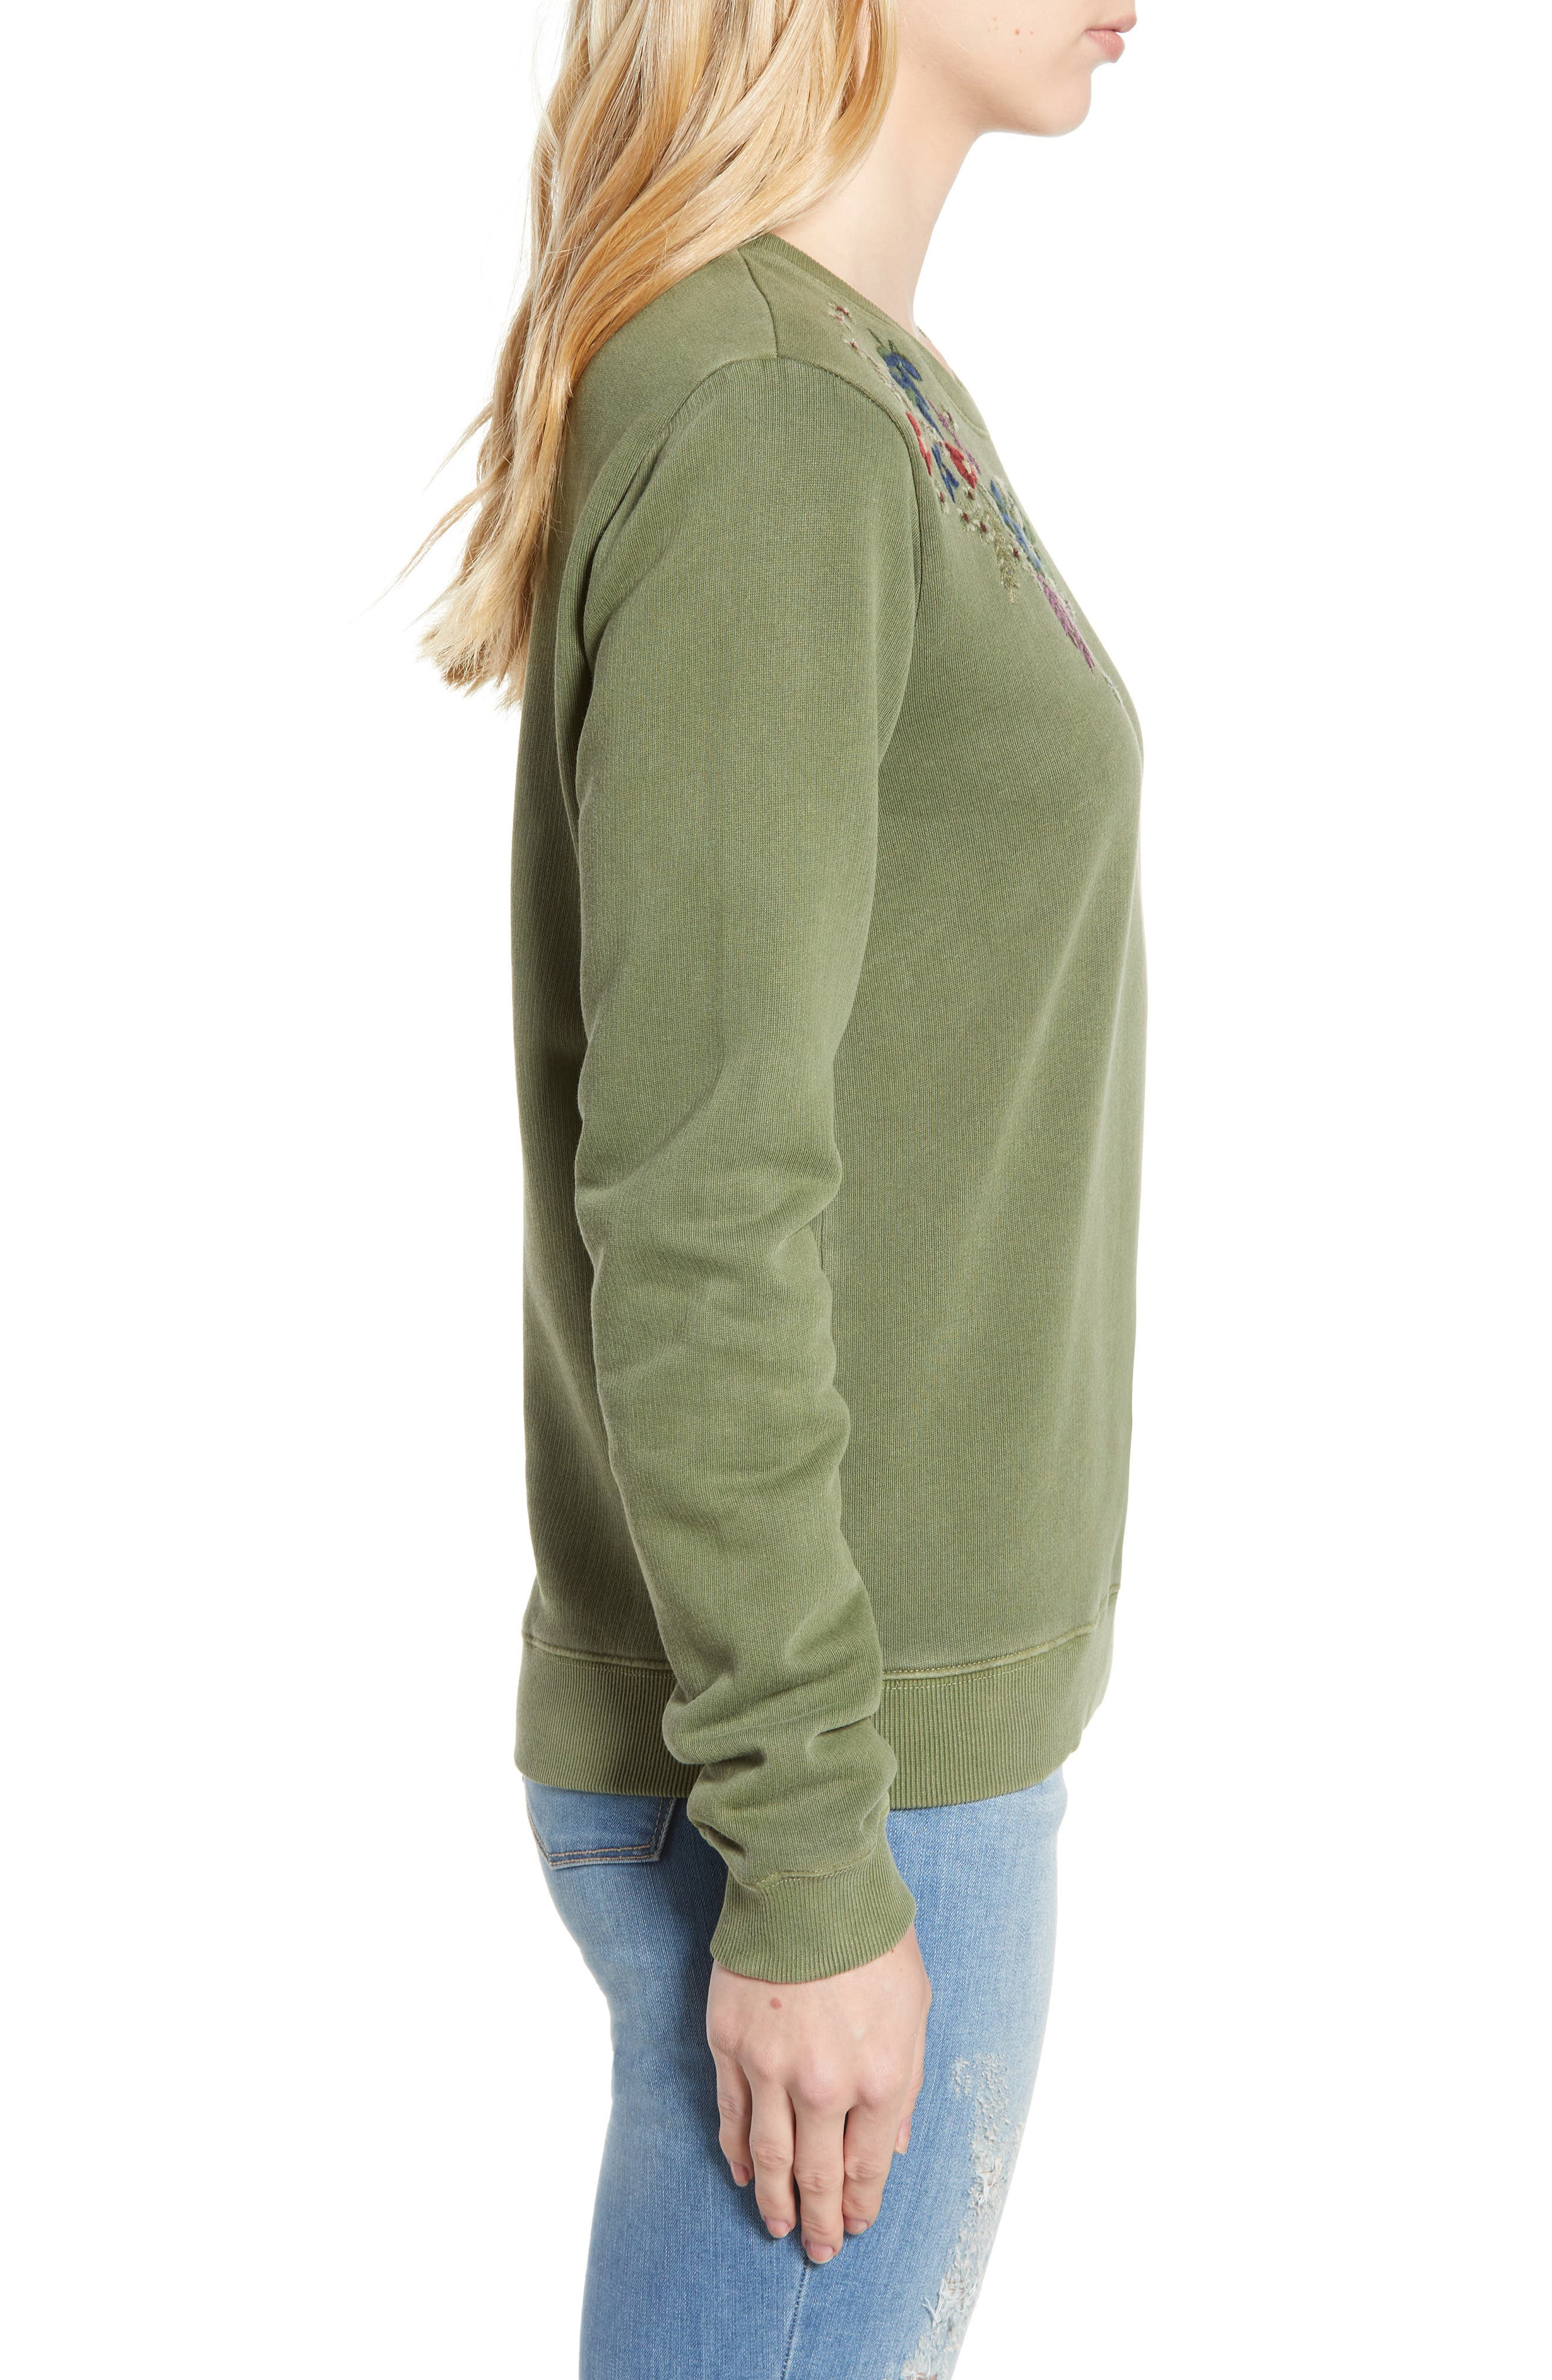 Embroidered Flowers Sweatshirt,                             Alternate thumbnail 3, color,                             OLIVE KNIT